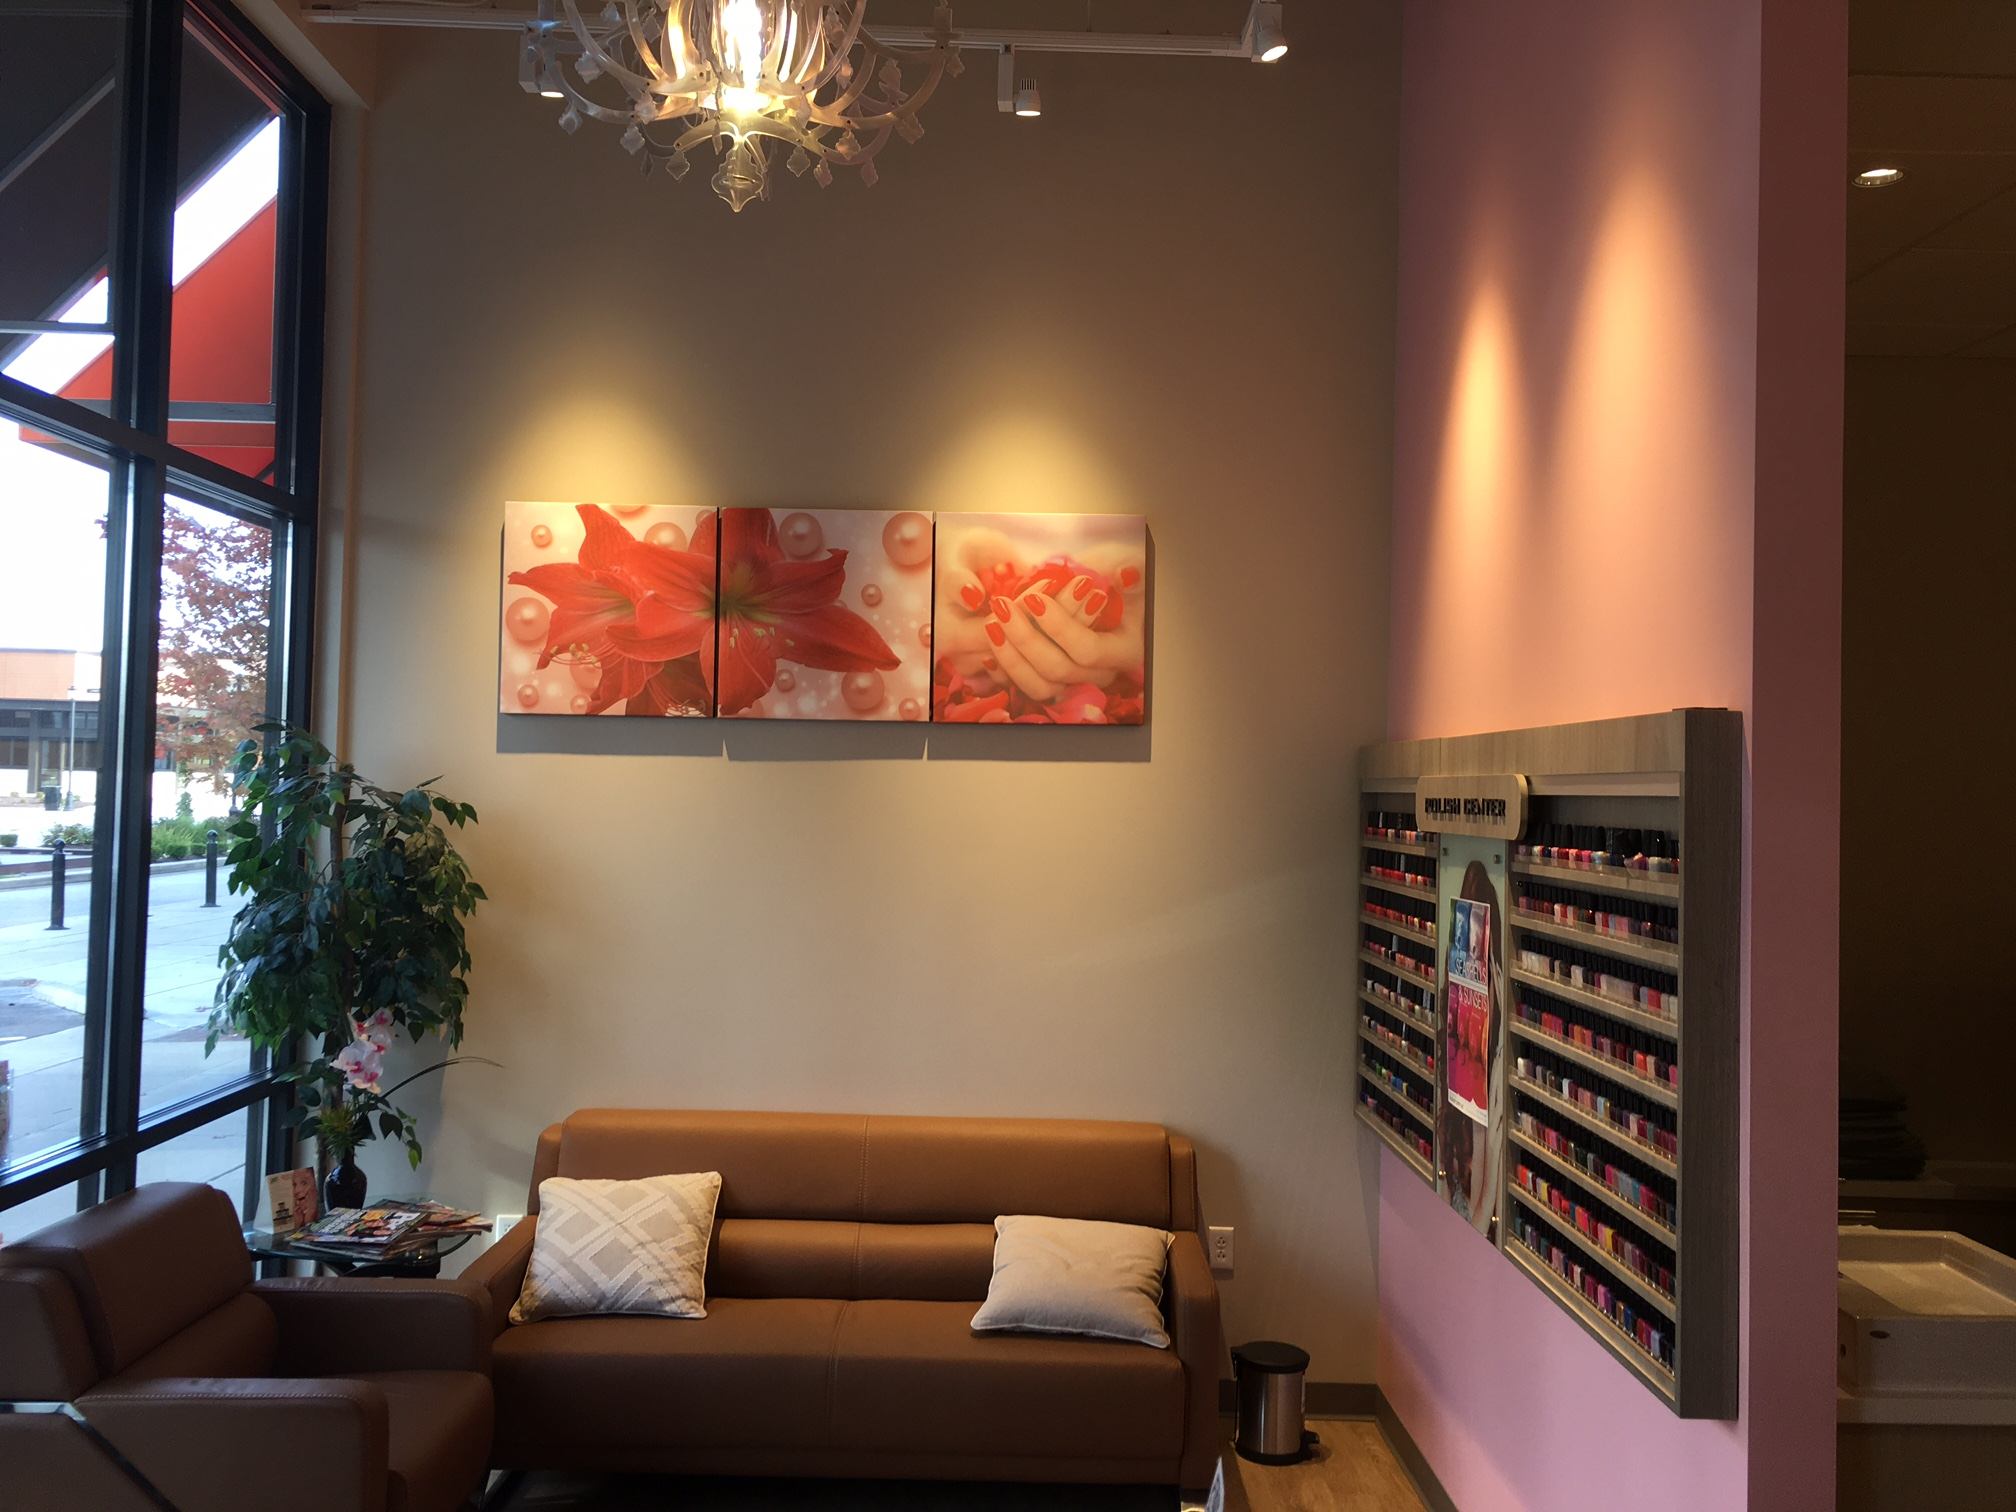 Superior building group think pink nail spa streets for 24 hour nail salon philadelphia